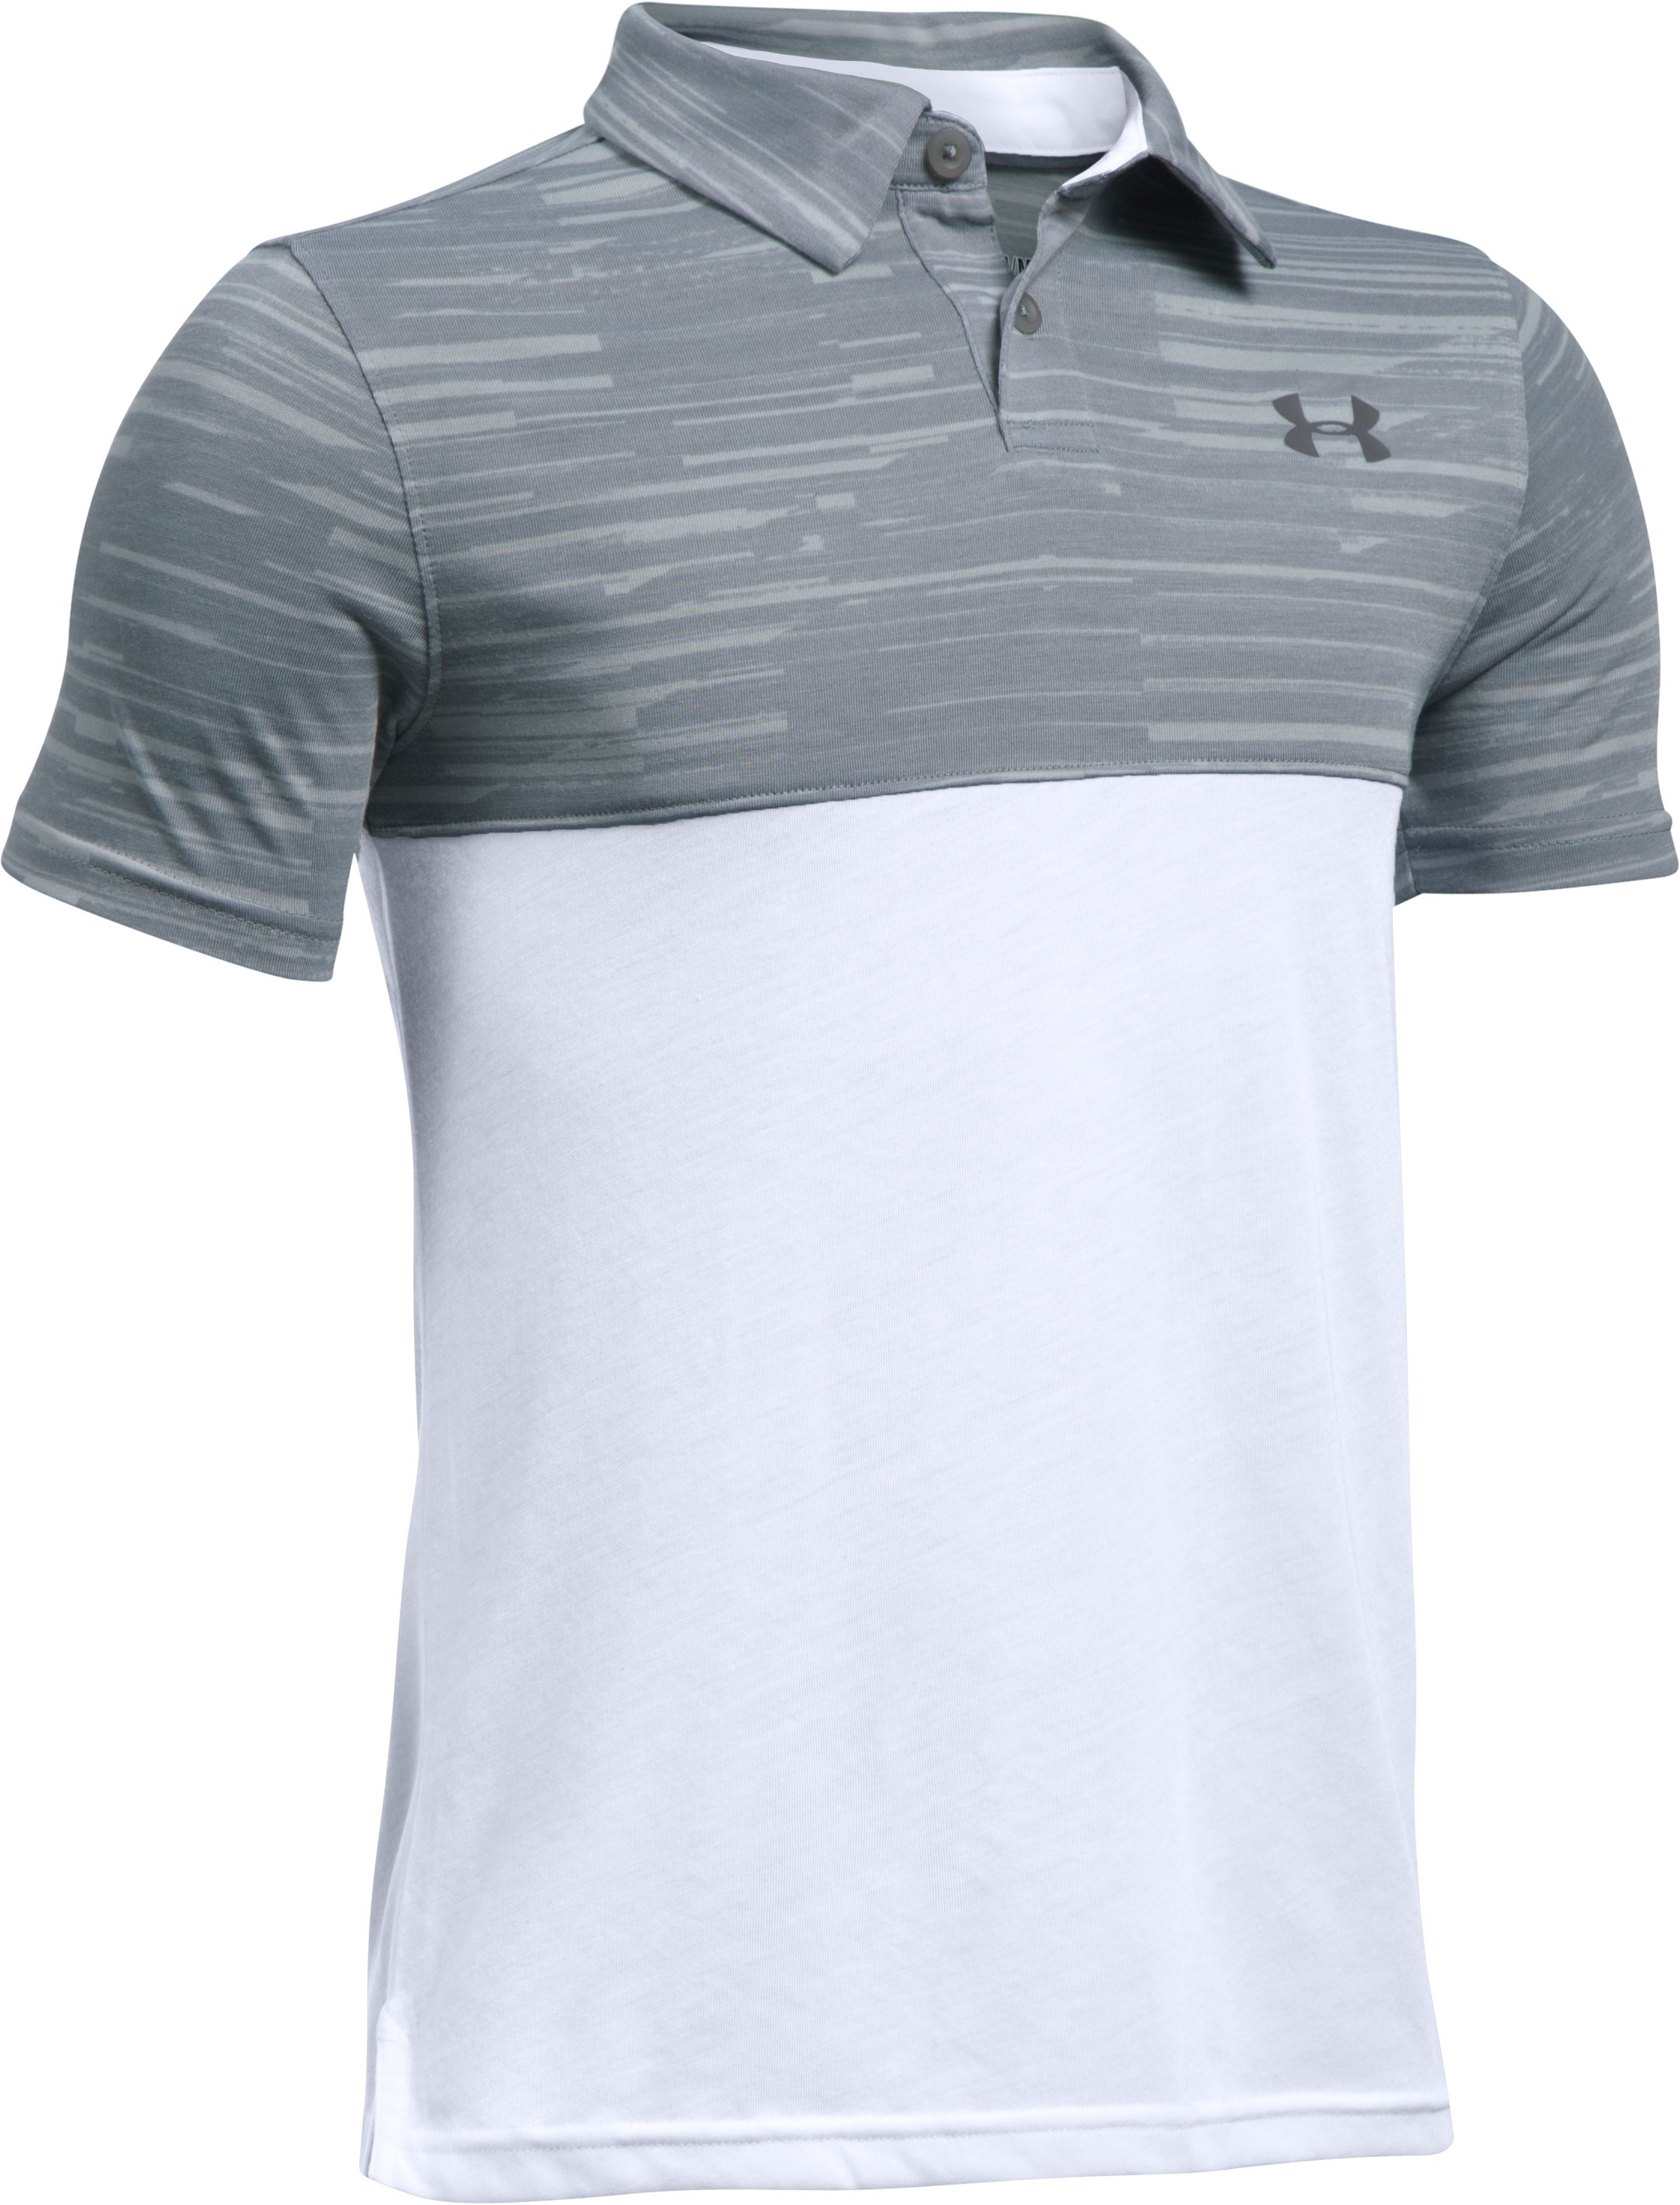 Boys' UA Threadborne Blocked Polo, Steel